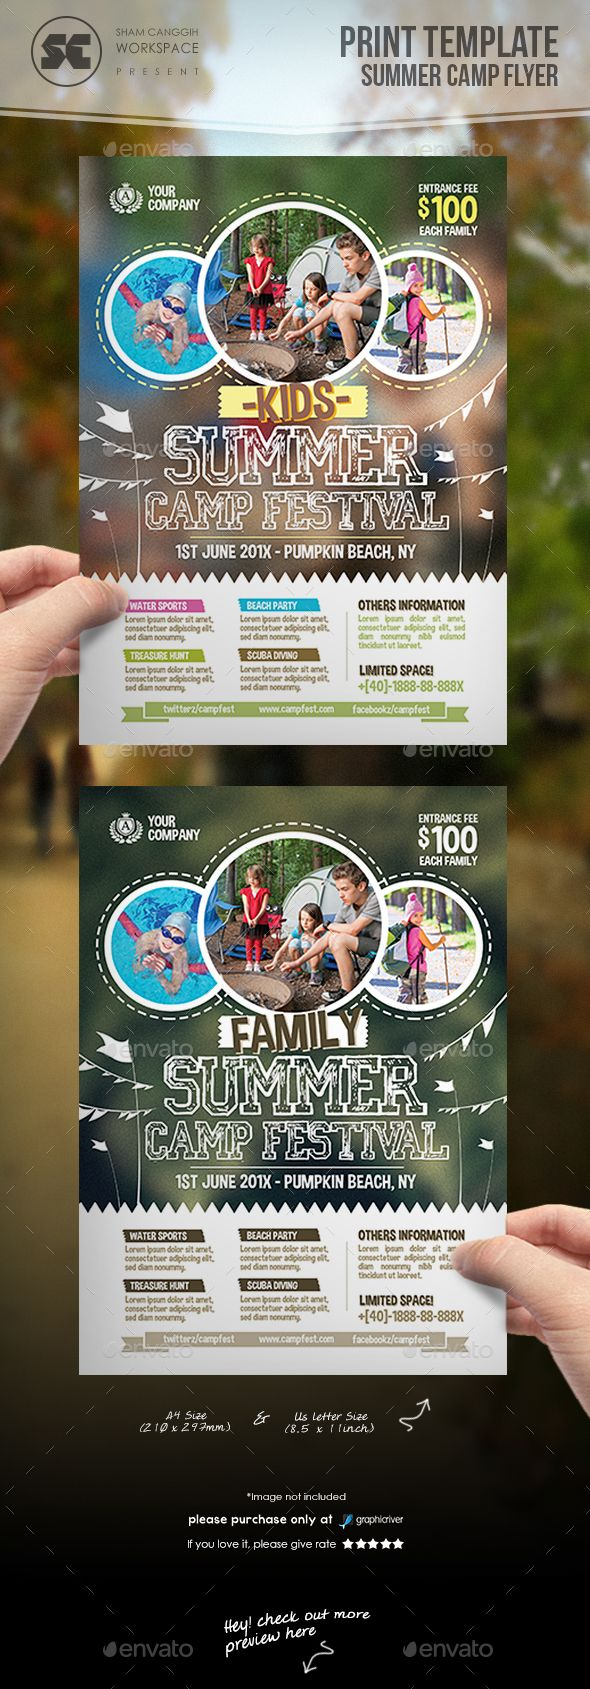 Summer Camp Flyer                                                                                                                                                                                 More